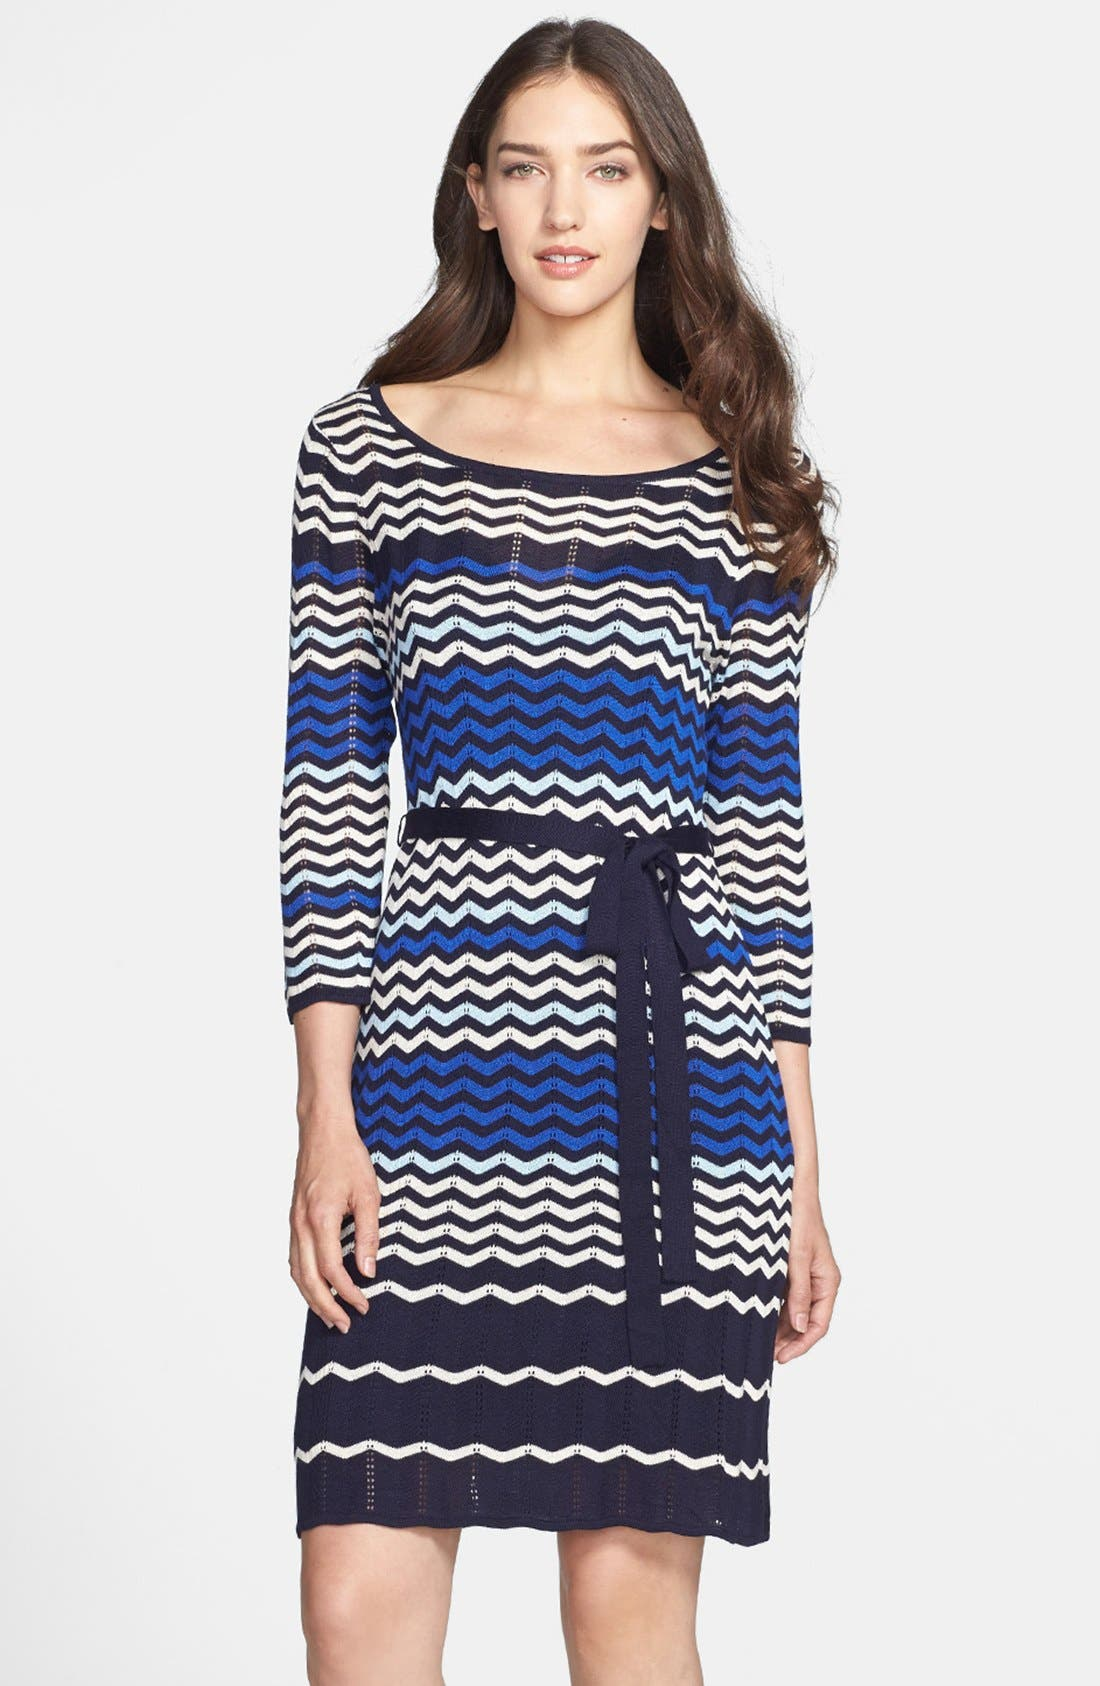 Alternate Image 1 Selected - Taylor Dresses Zigzag Knit Sweater Dress